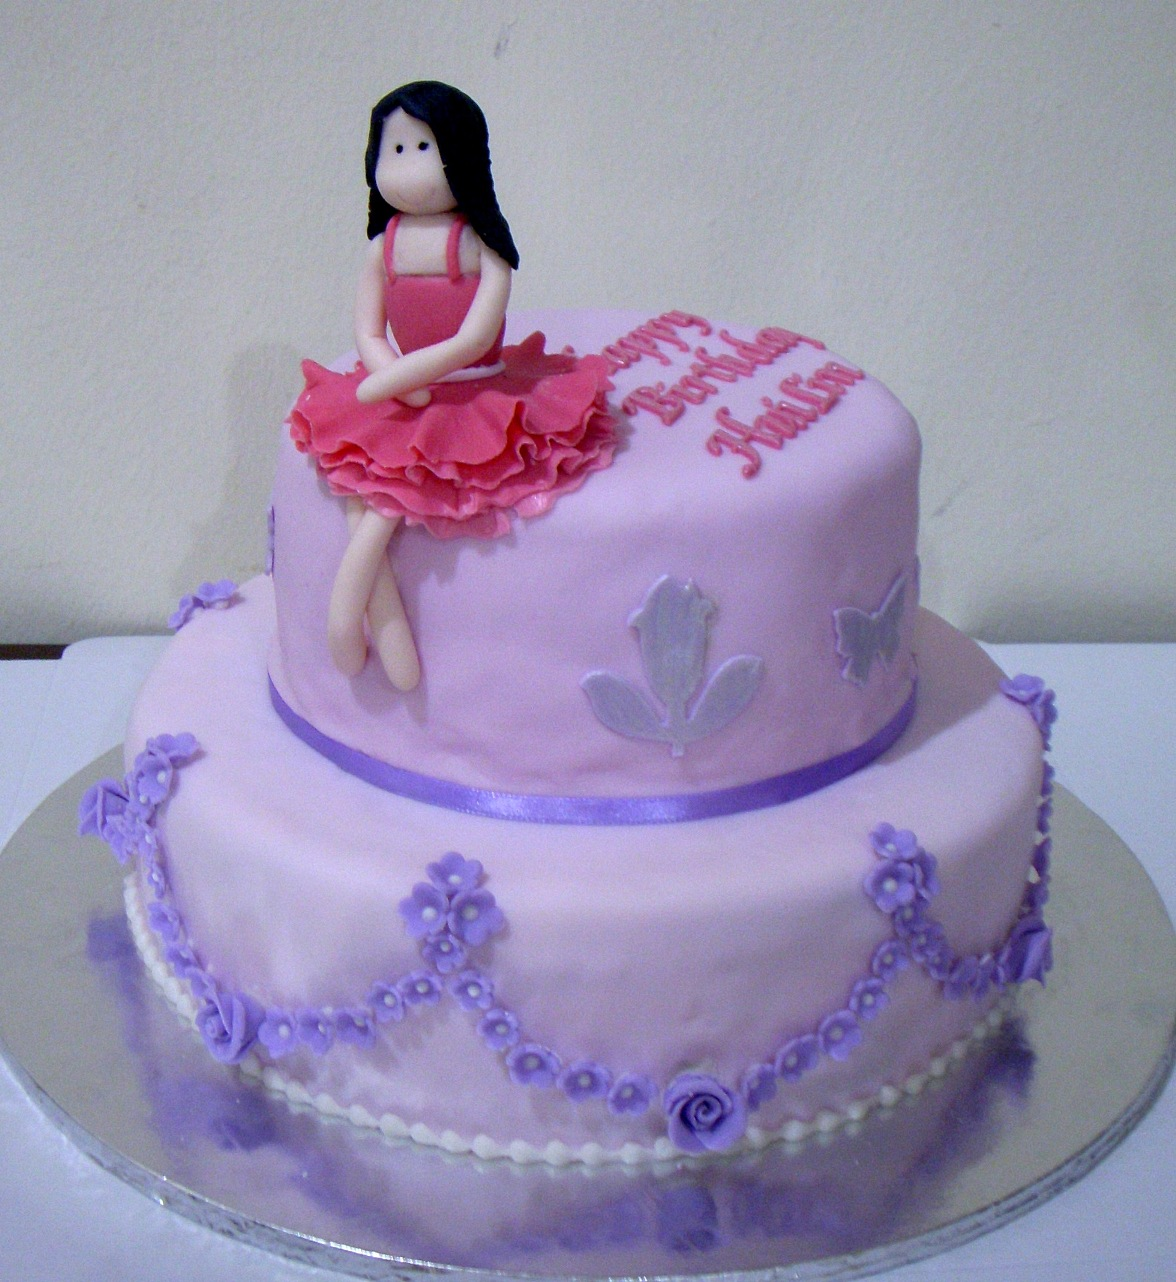 Birthday Cake Photos For Girlfriend : Bearylicious Cakes: Purple birthday cake with girl